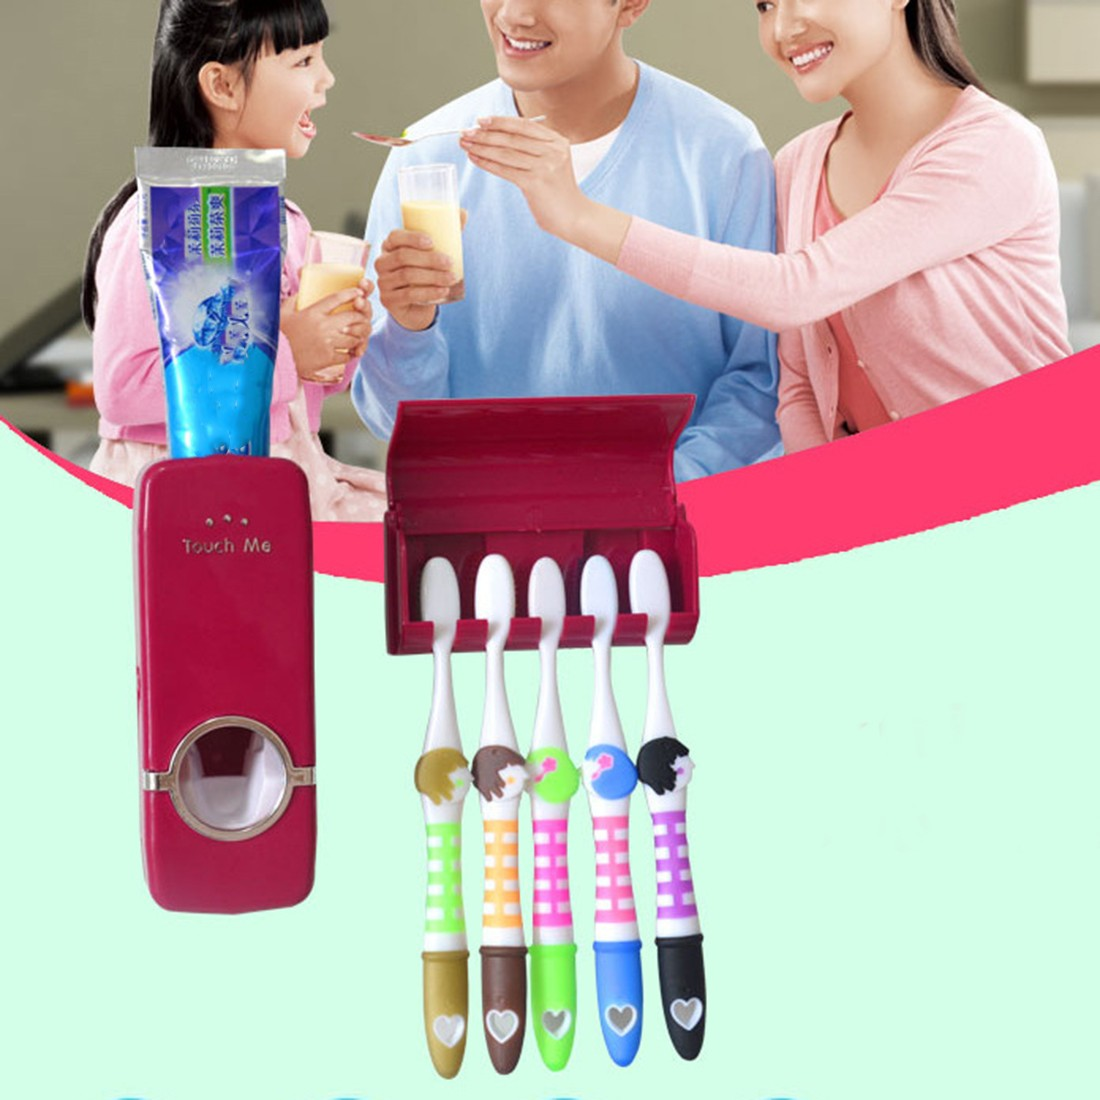 Top Toothpaste Dispenser 5 Toothbrush Holder Set Wall Mount Stand Toothbrush Family Tools Accessories Bathroom Products